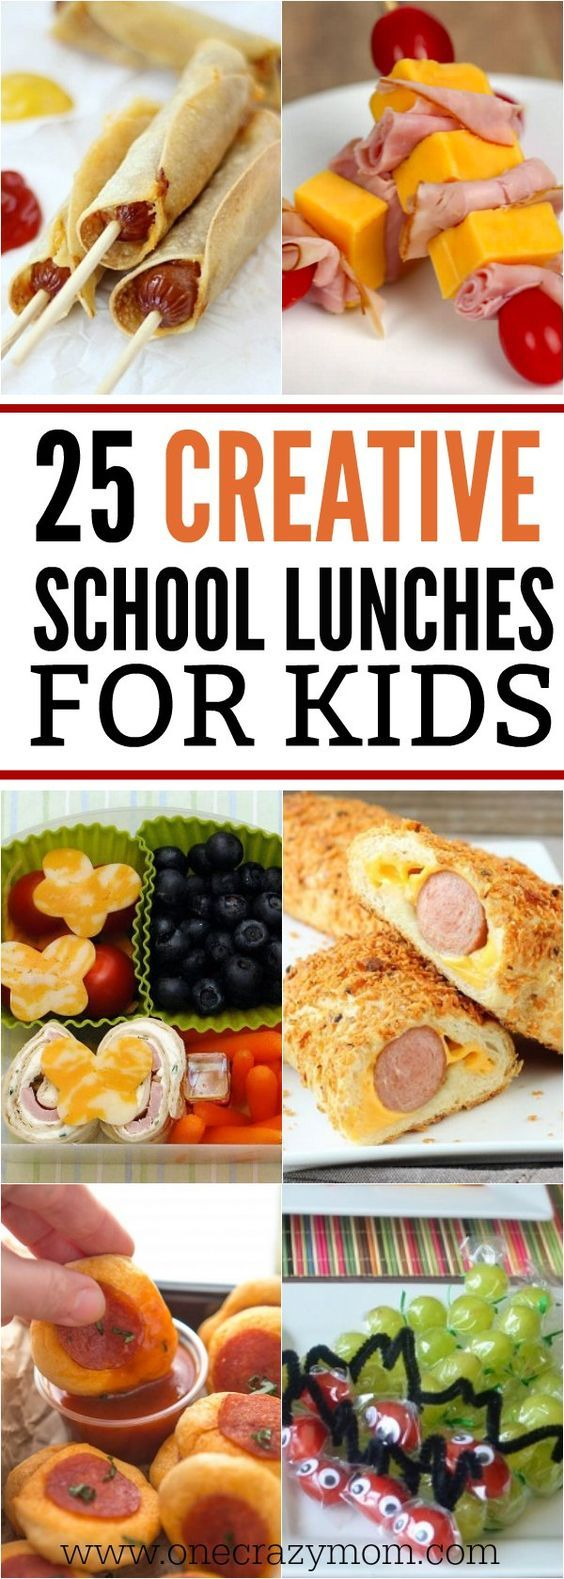 School Lunch Ideas for Kids - 25 Easy Lunch Ideas for School images